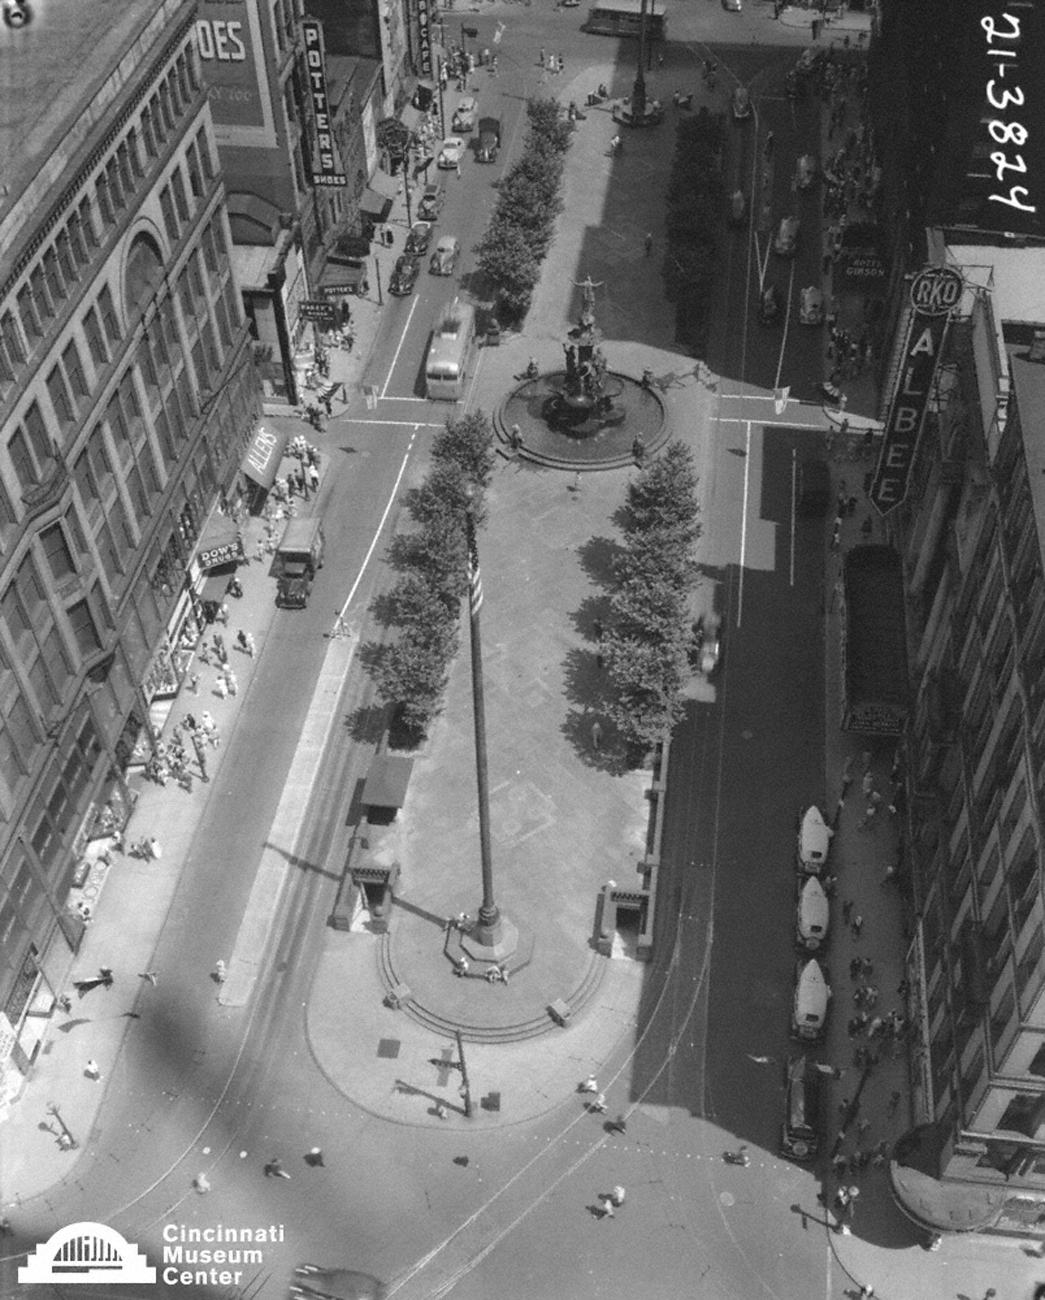 Fountain Square from the early 20th Century / Image: Paul Briol,  accessed via the Cincinnati Museum Center History Library and Archives // Published: 2.16.19